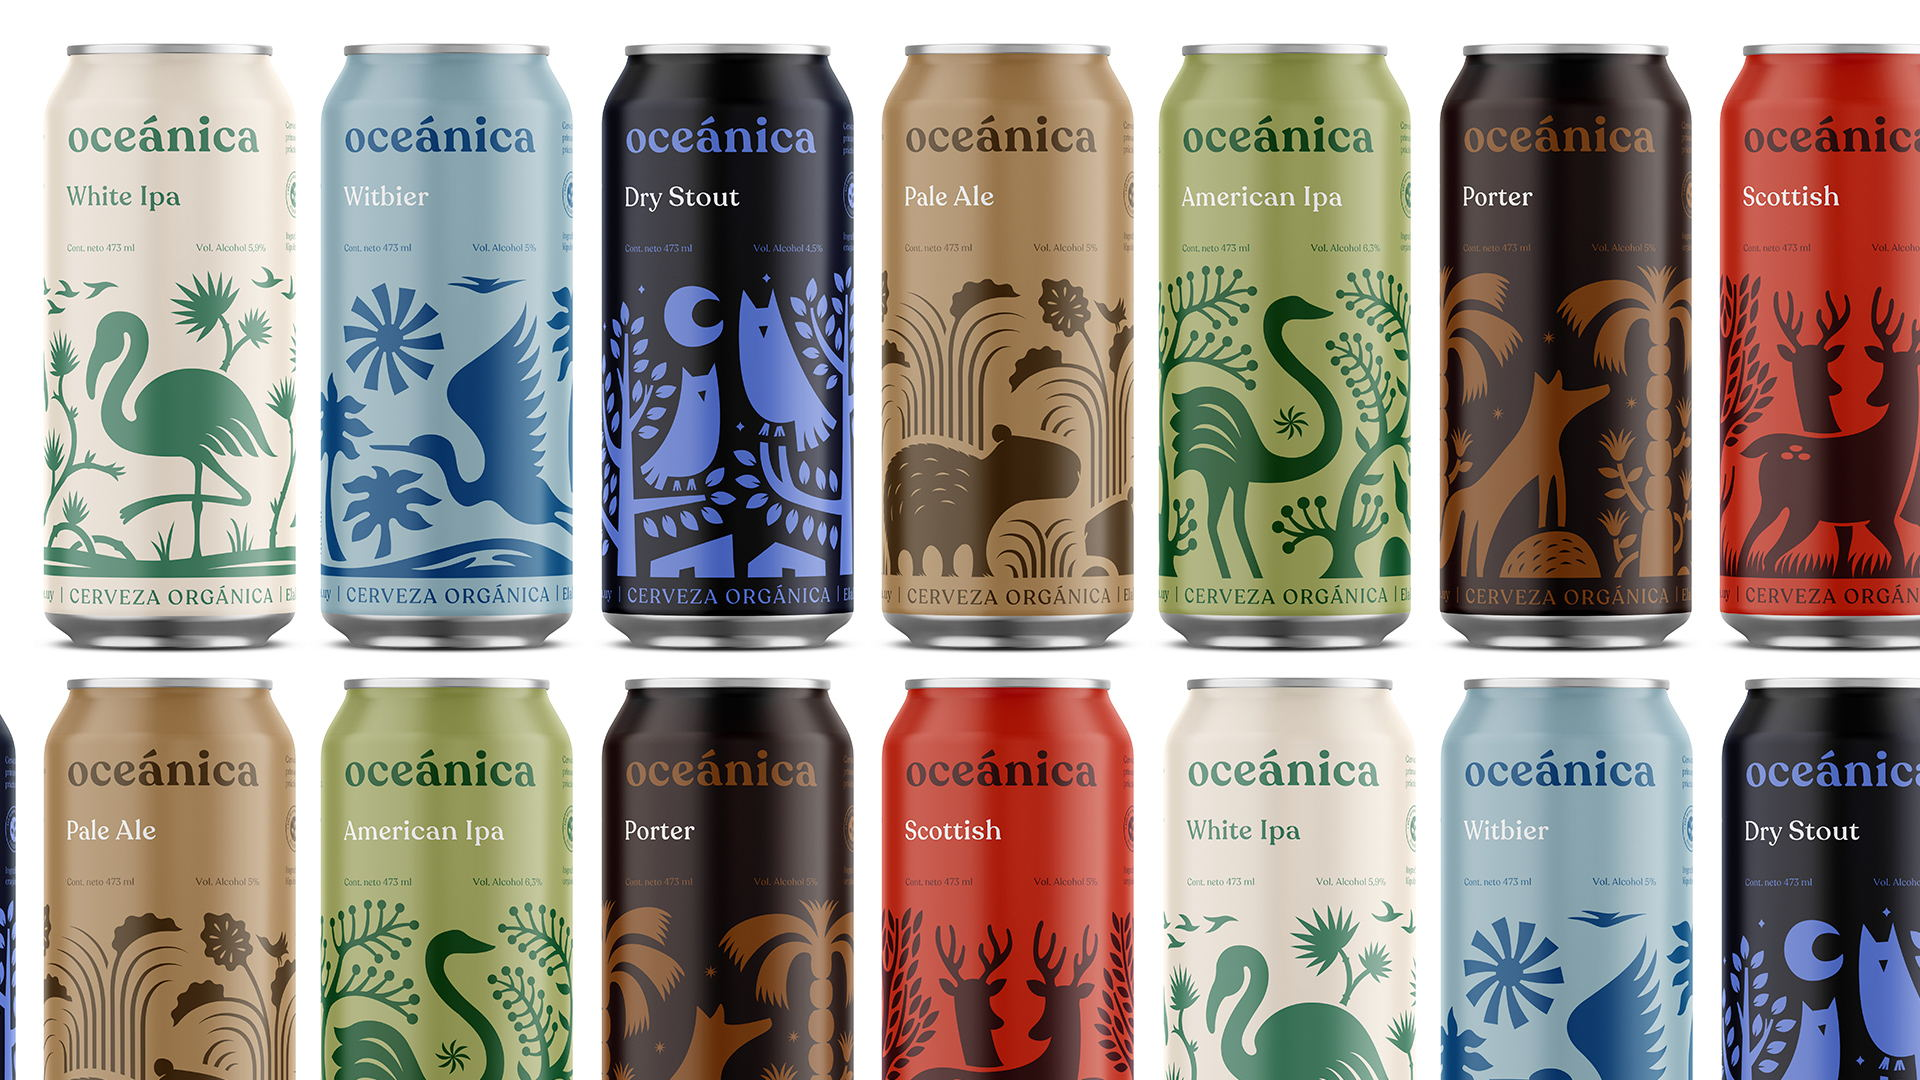 Check Out This Beer That Pays Tribute To The Flora and Fauna of Uruguay